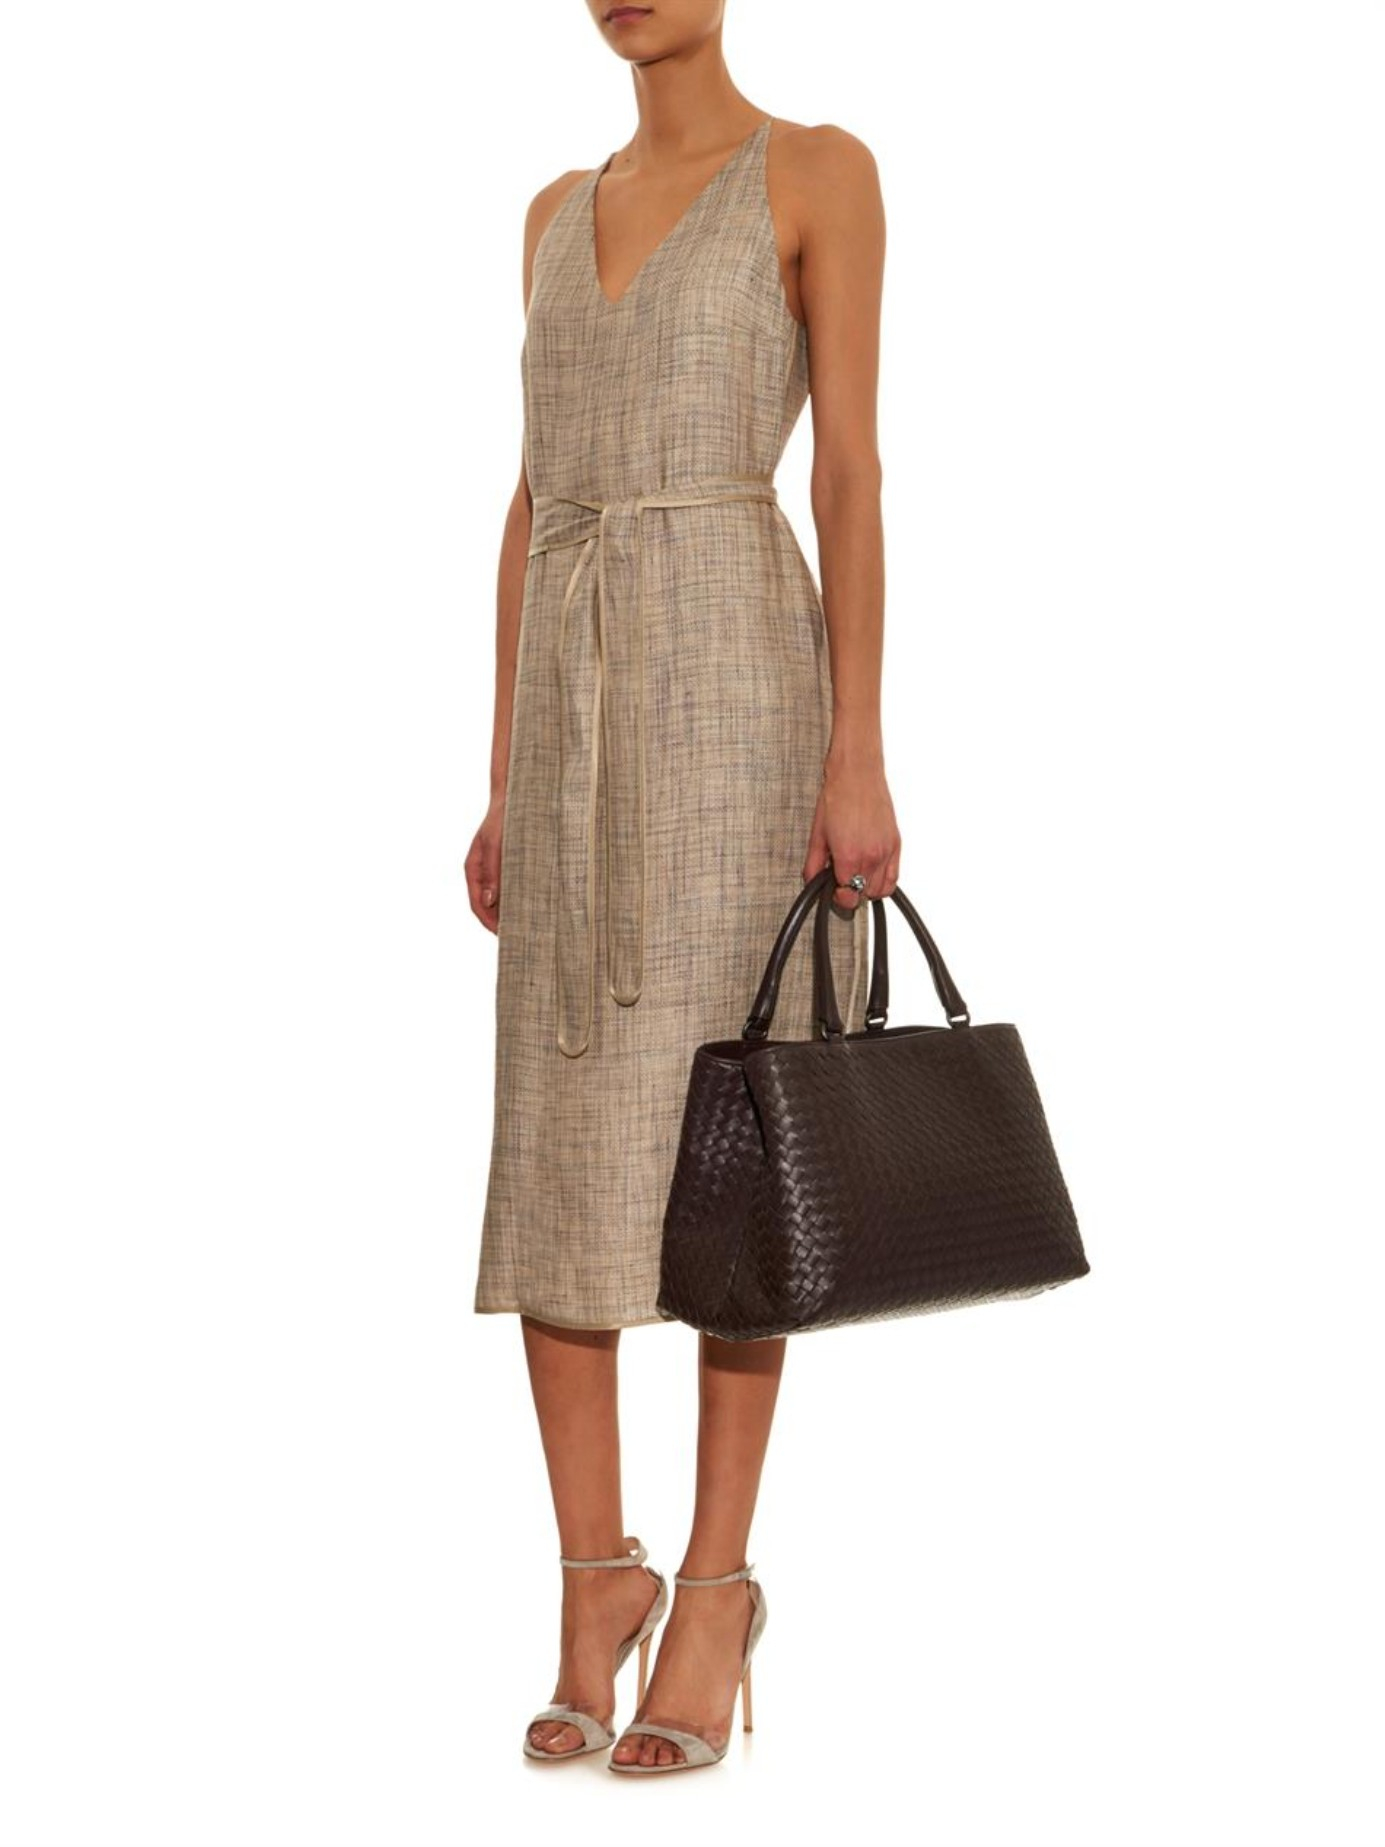 24e0f047b1bc Bottega Veneta Milano Intrecciato Leather Tote in Brown - Lyst